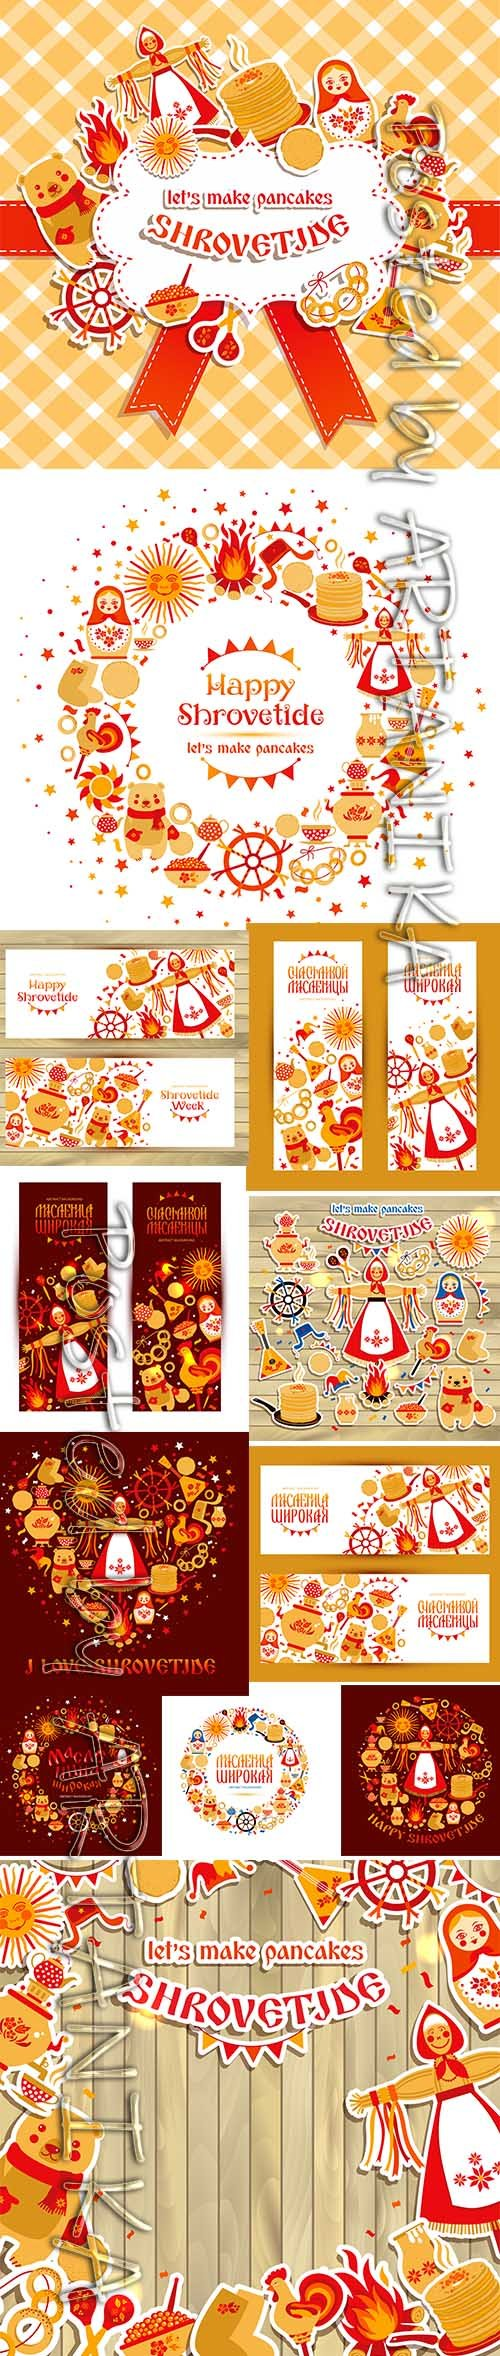 Vector Set of Theme Russian Holiday Carnival Illustrations